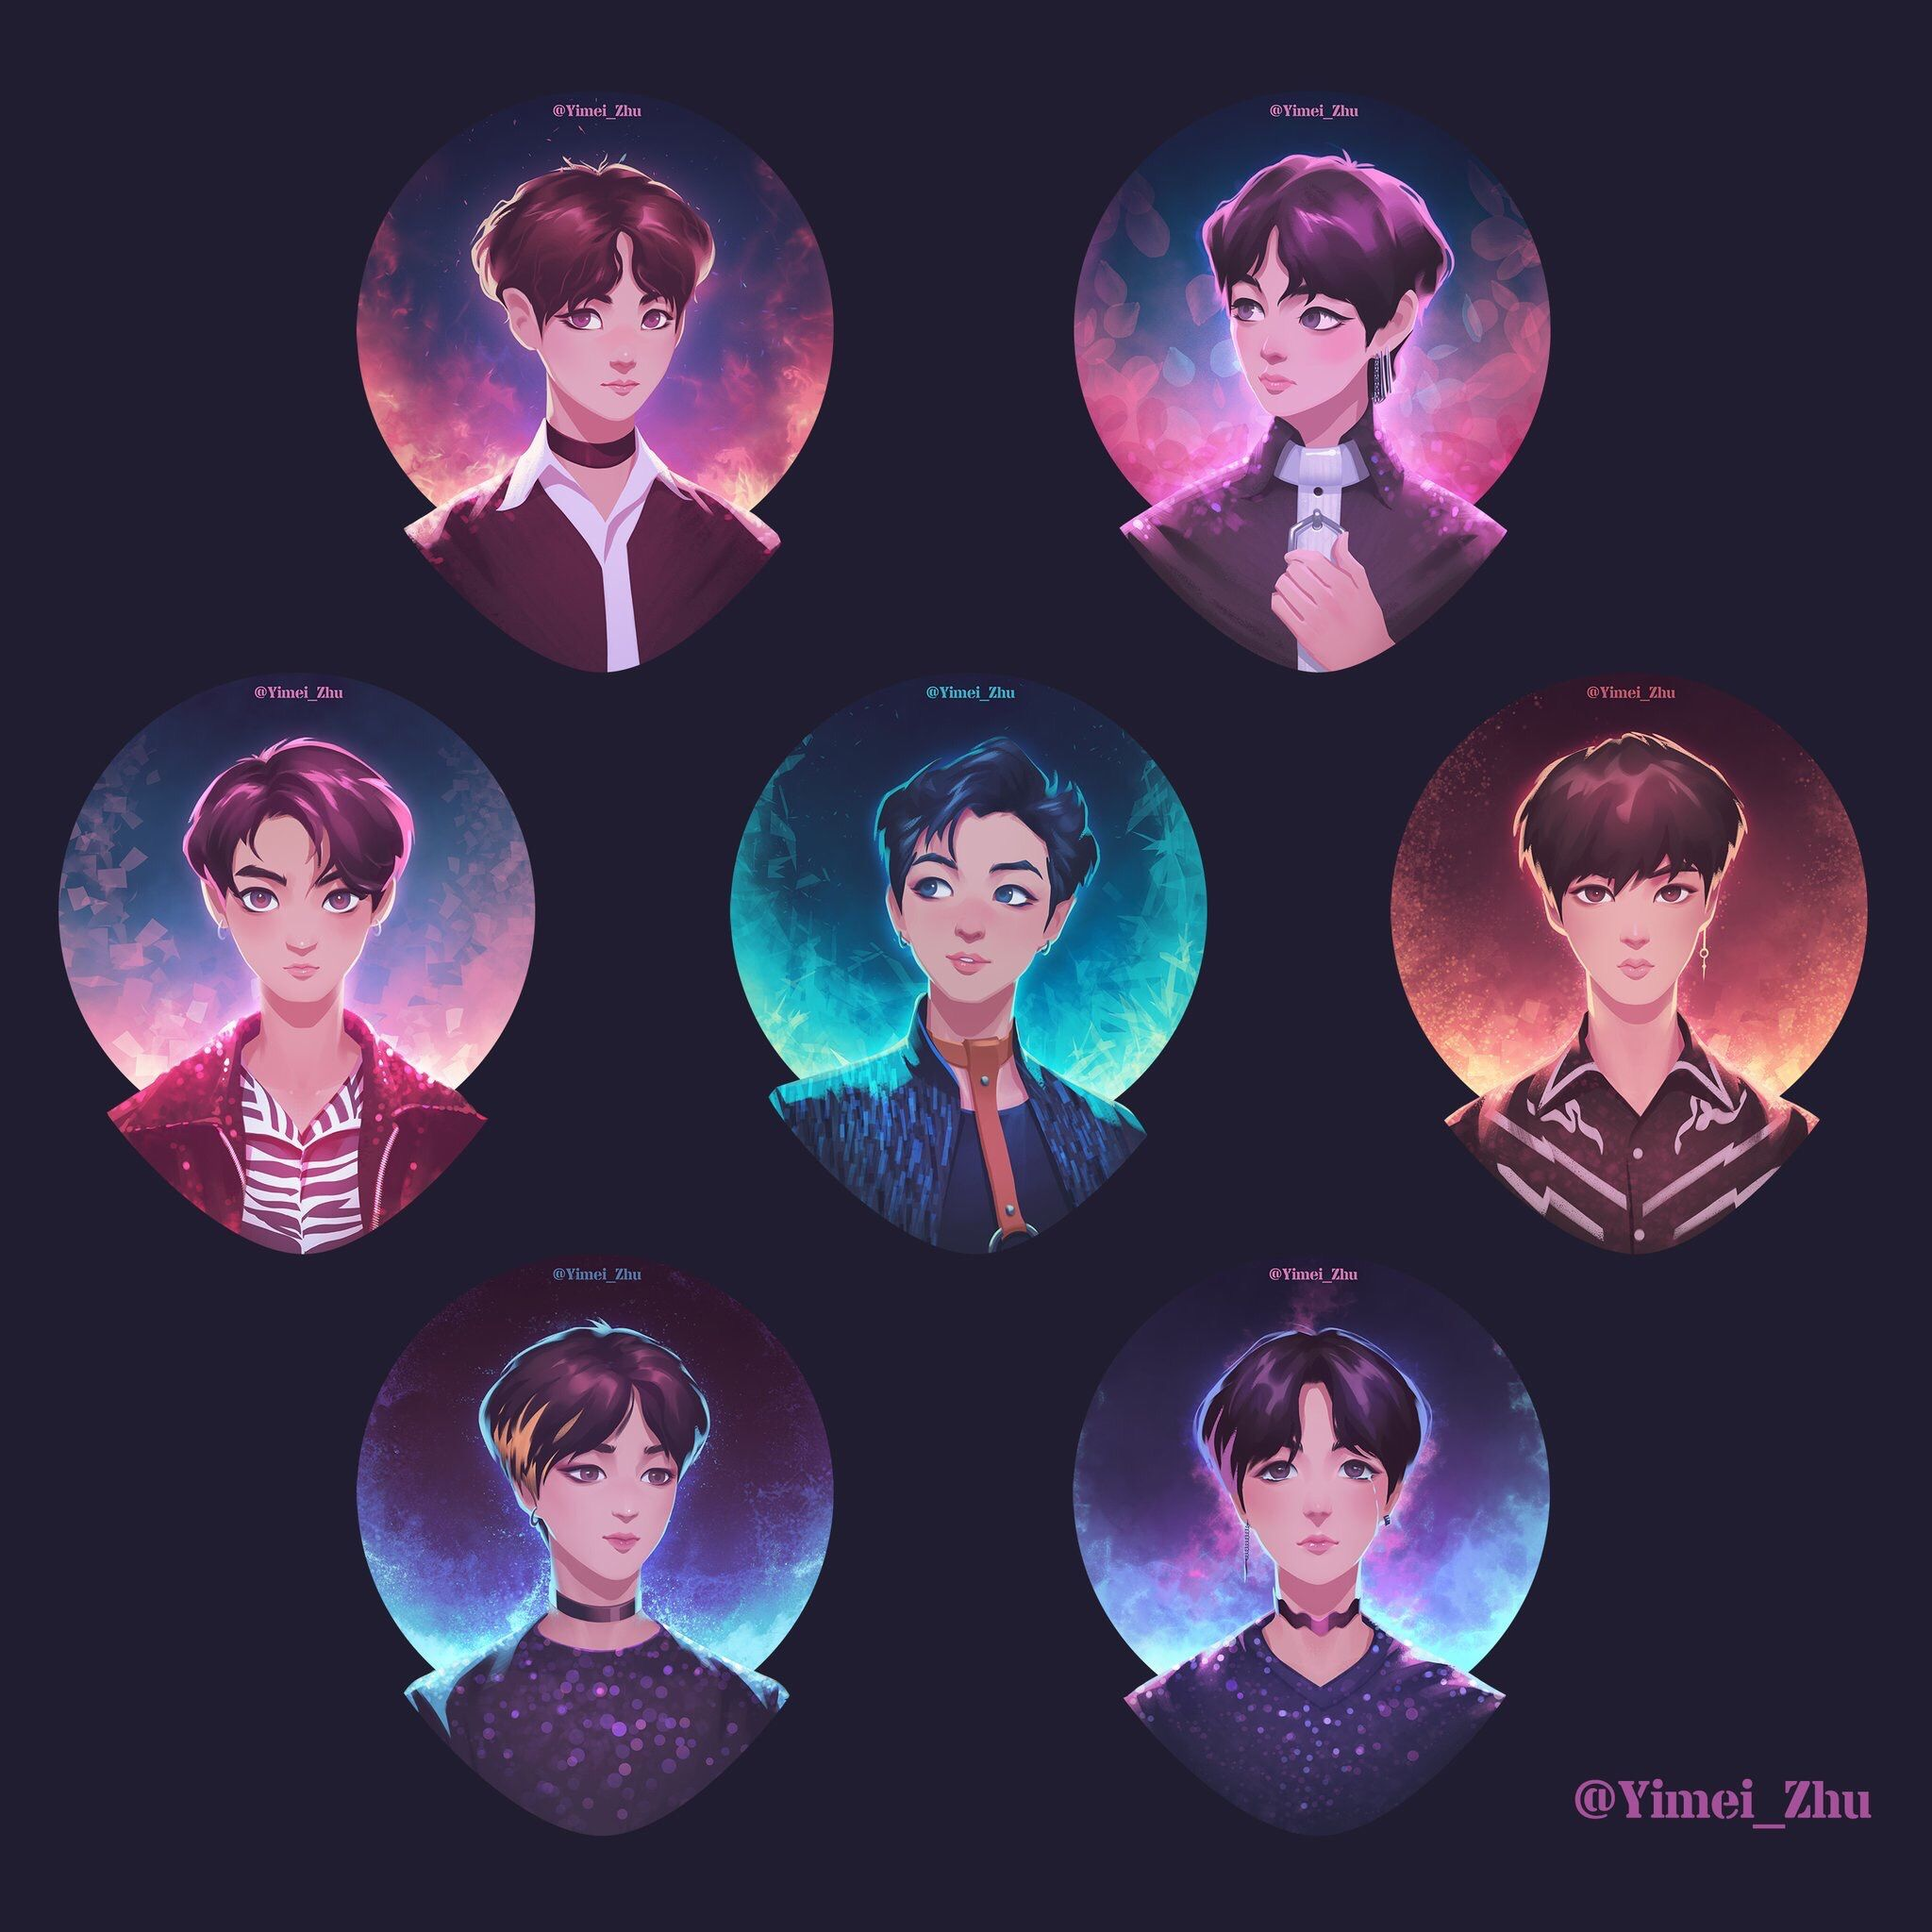 Fake Love Wallpapers: #bts #btsfanart #fanart Credit To Twitter.com/yimei_zhu